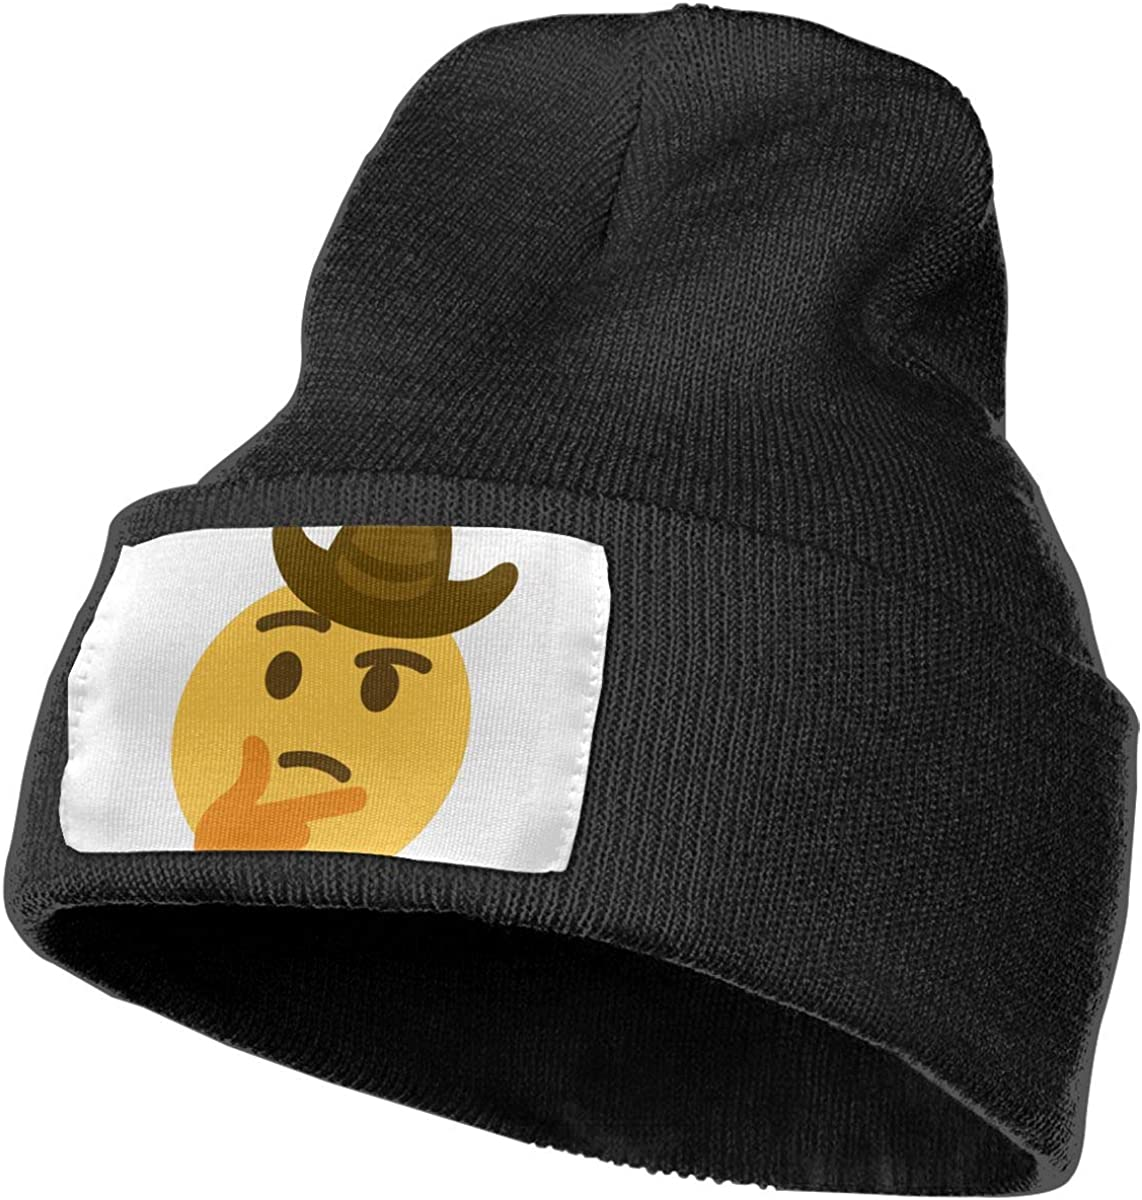 QZqDQ Thinking Cowboy Unisex Fashion Knitted Hat Luxury Hip-Hop Cap